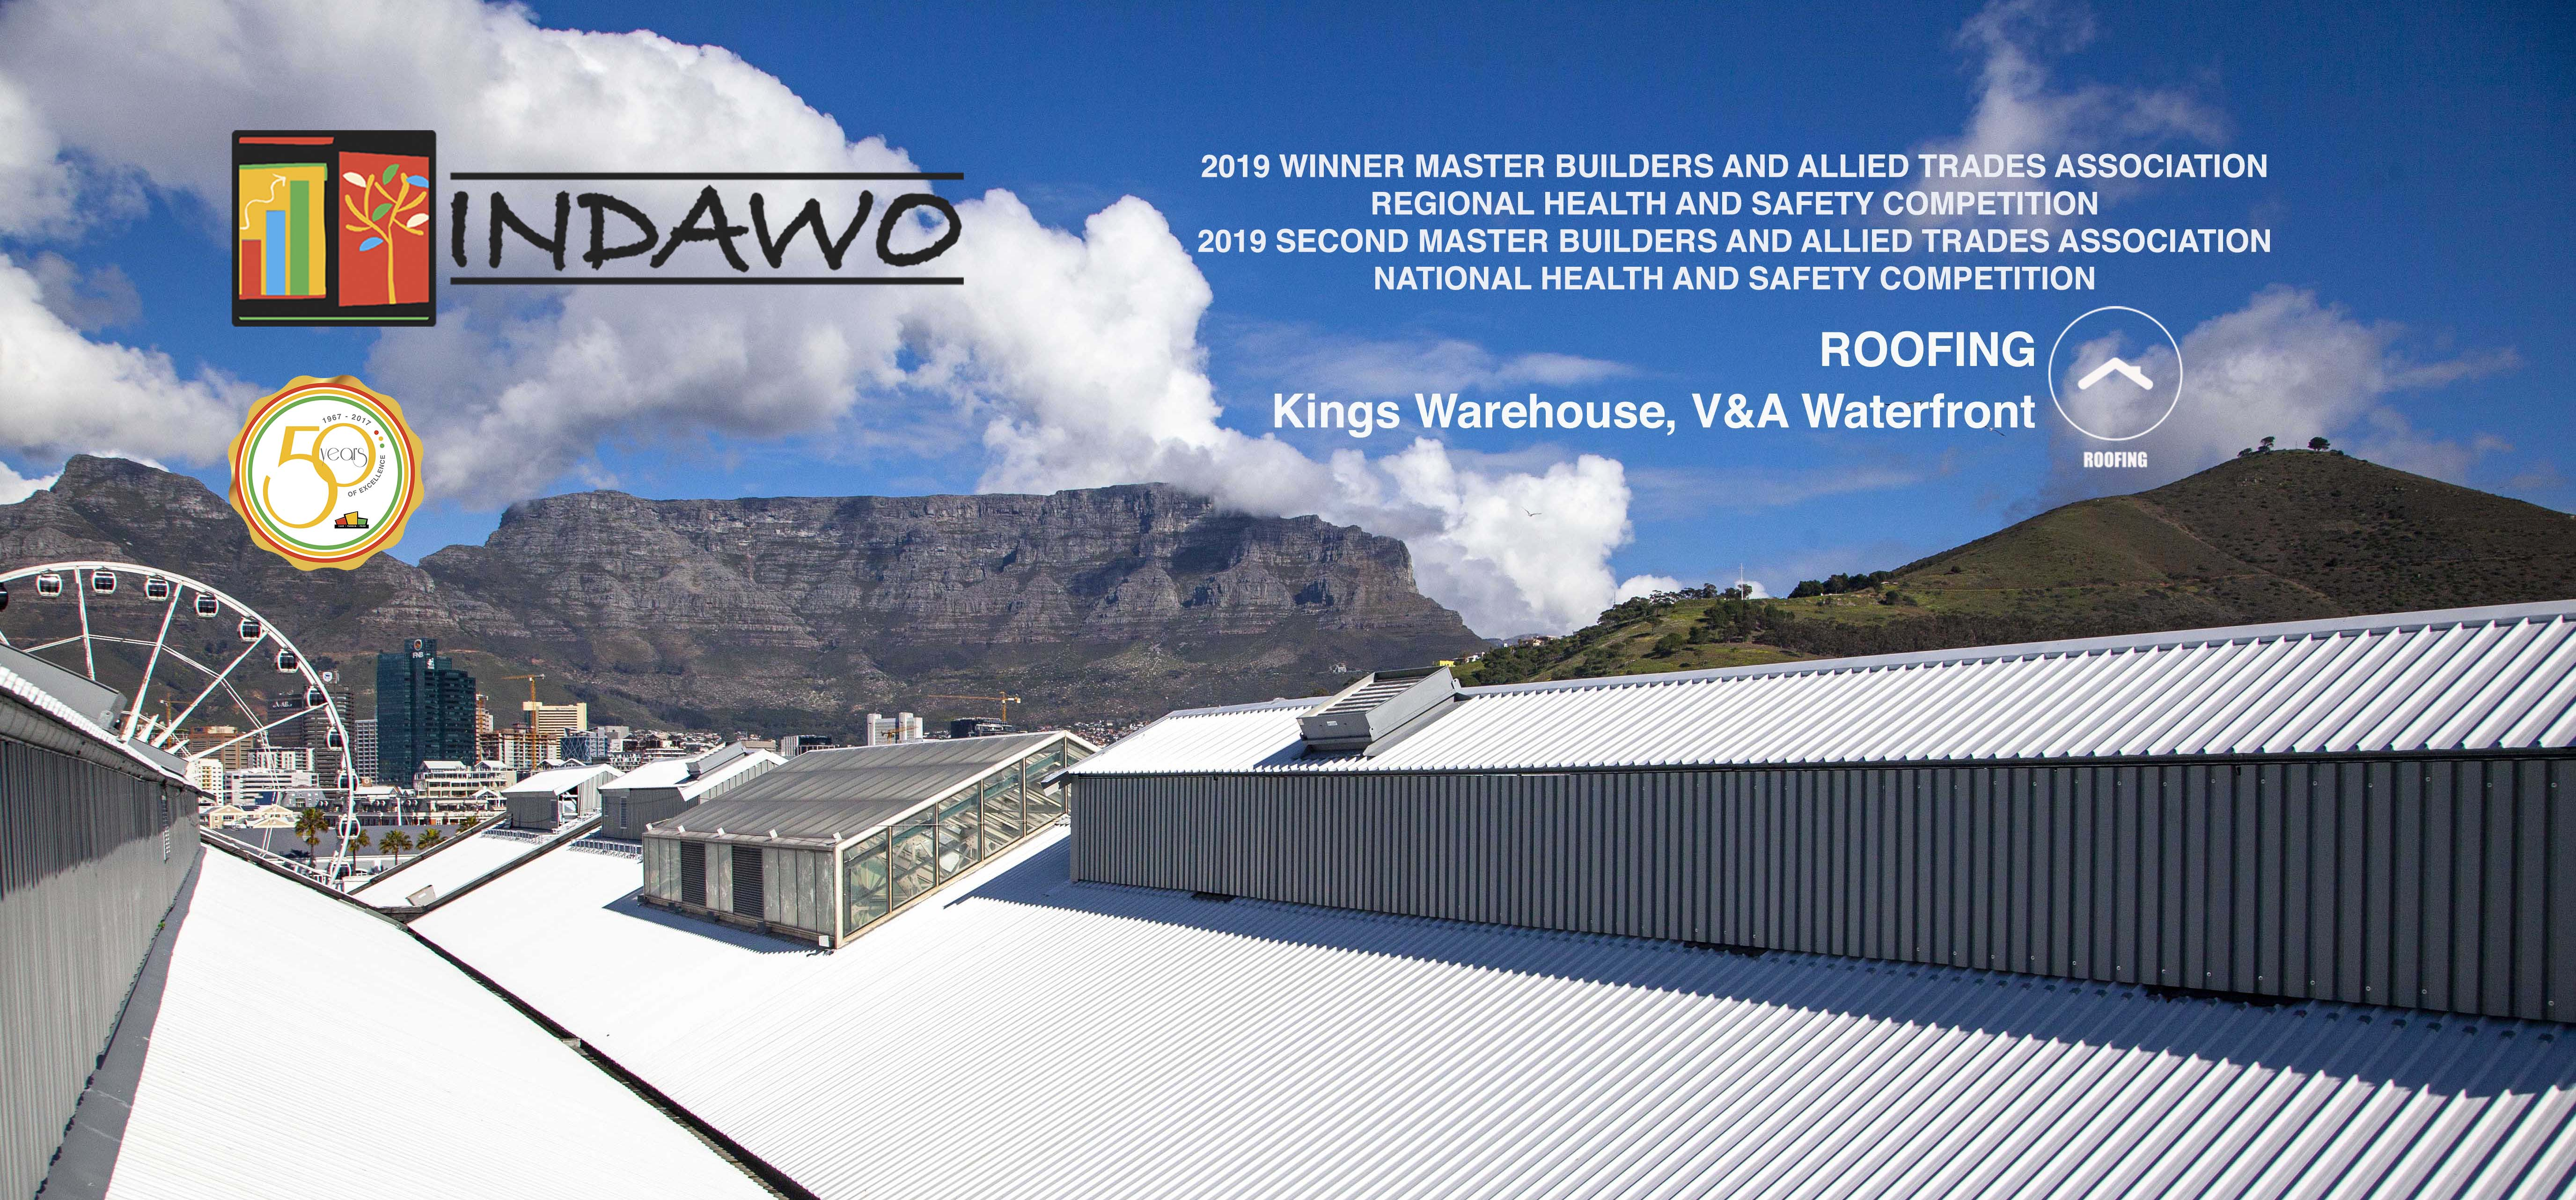 Kings Warehouse roofing project winner 2019 master builders and allied trades association MBA health and safety competition